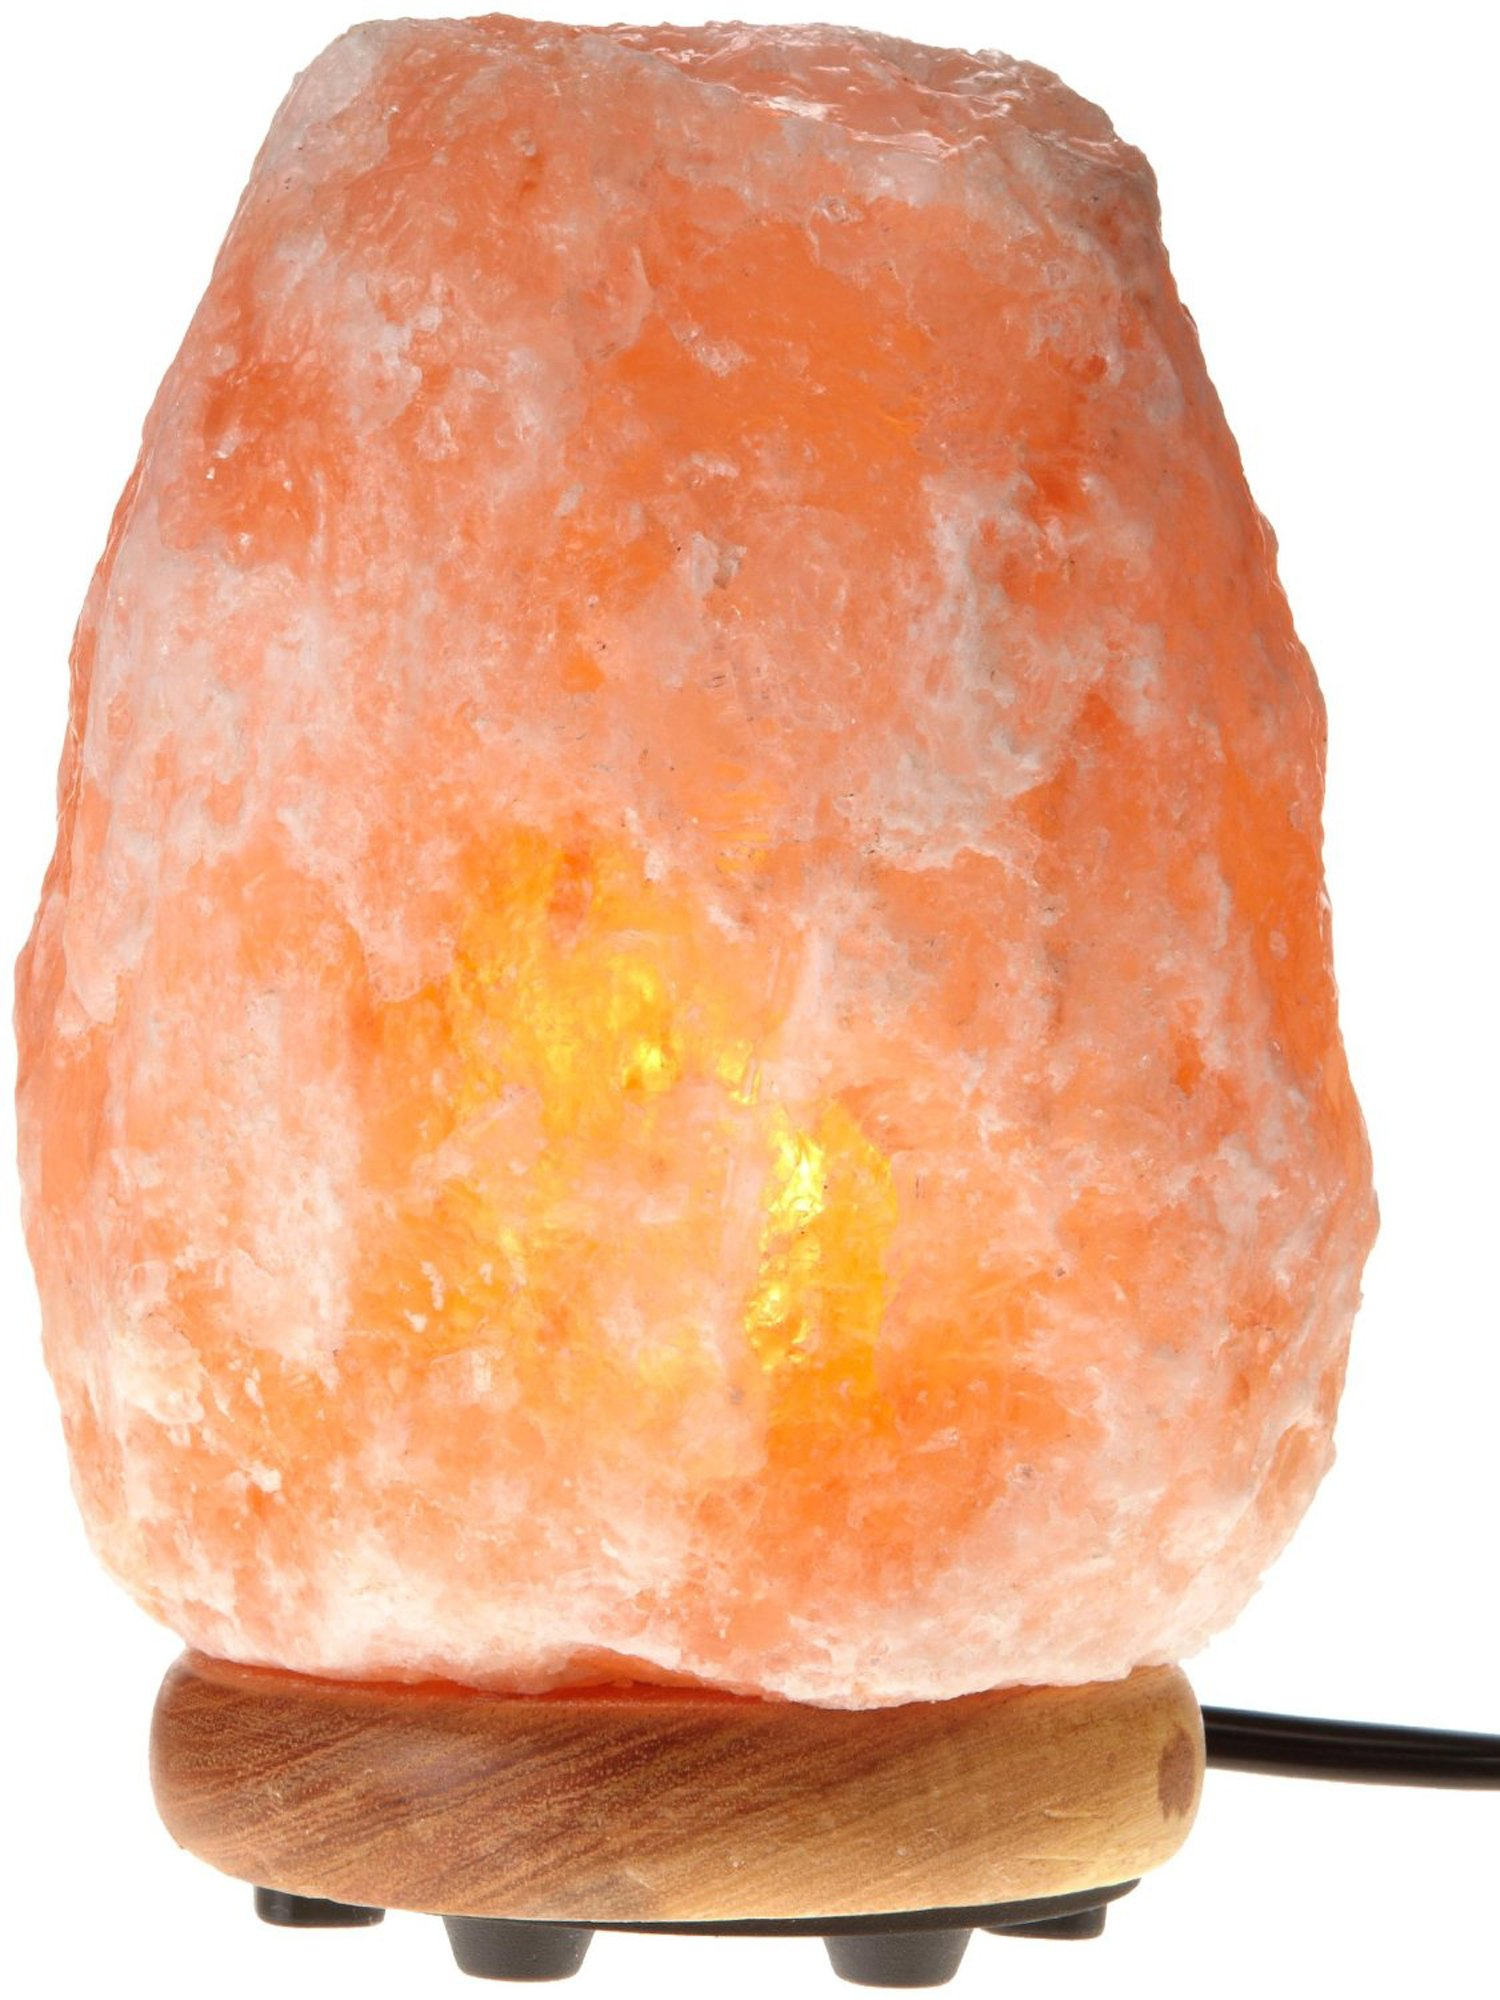 Himalayan Glow Salt Lamp, Rare Limited Edition, 25-35 lbs, Floor Lamp, Home Decor, Dimmable, New Launch 2018 by WBM